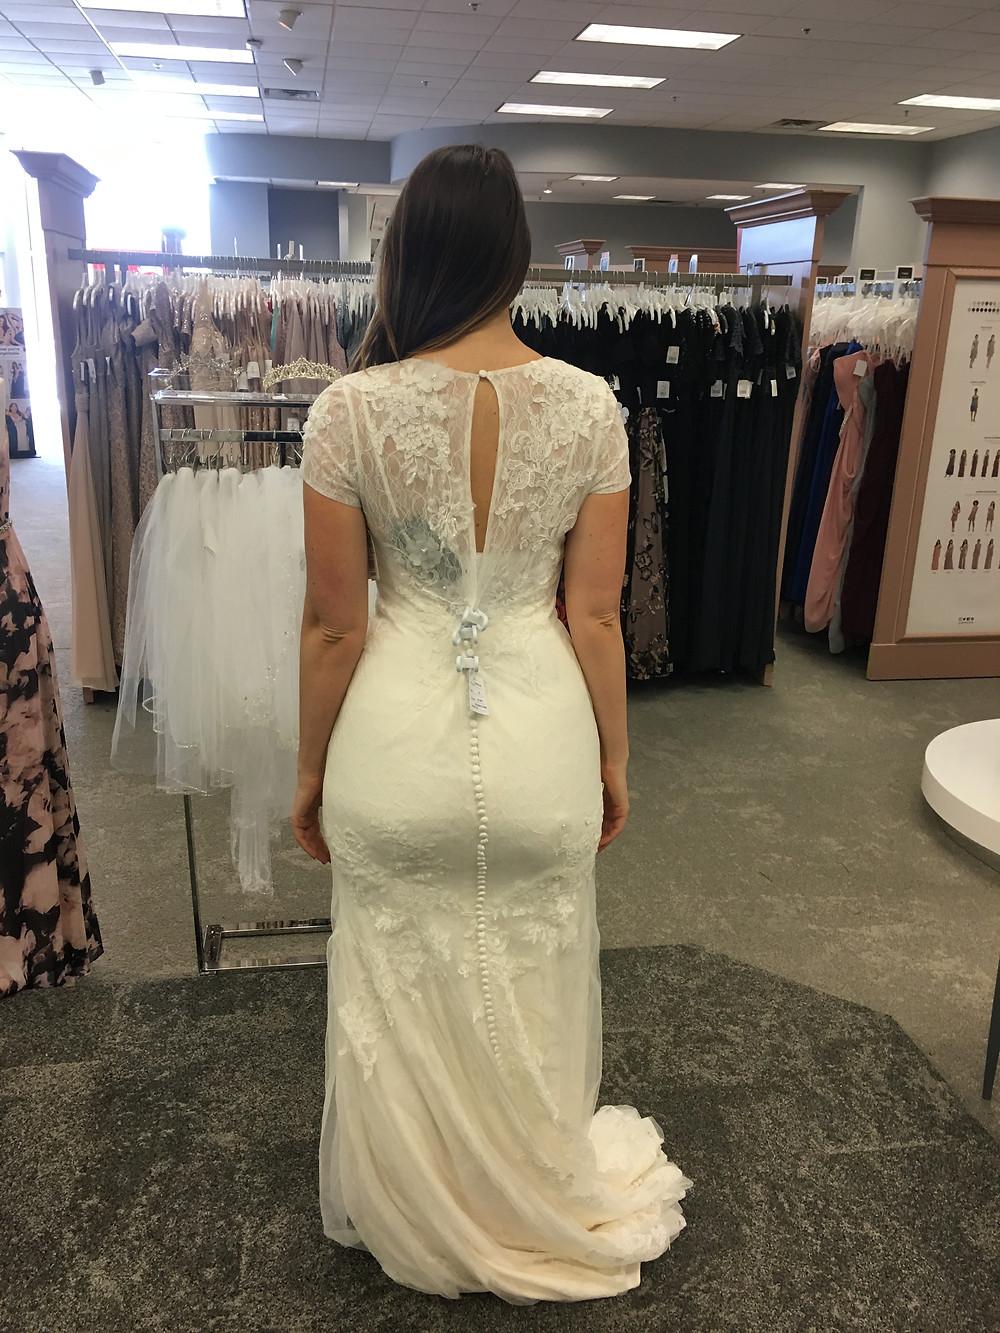 Lipstick and Lunges - Wedding Dress for pear shaped body